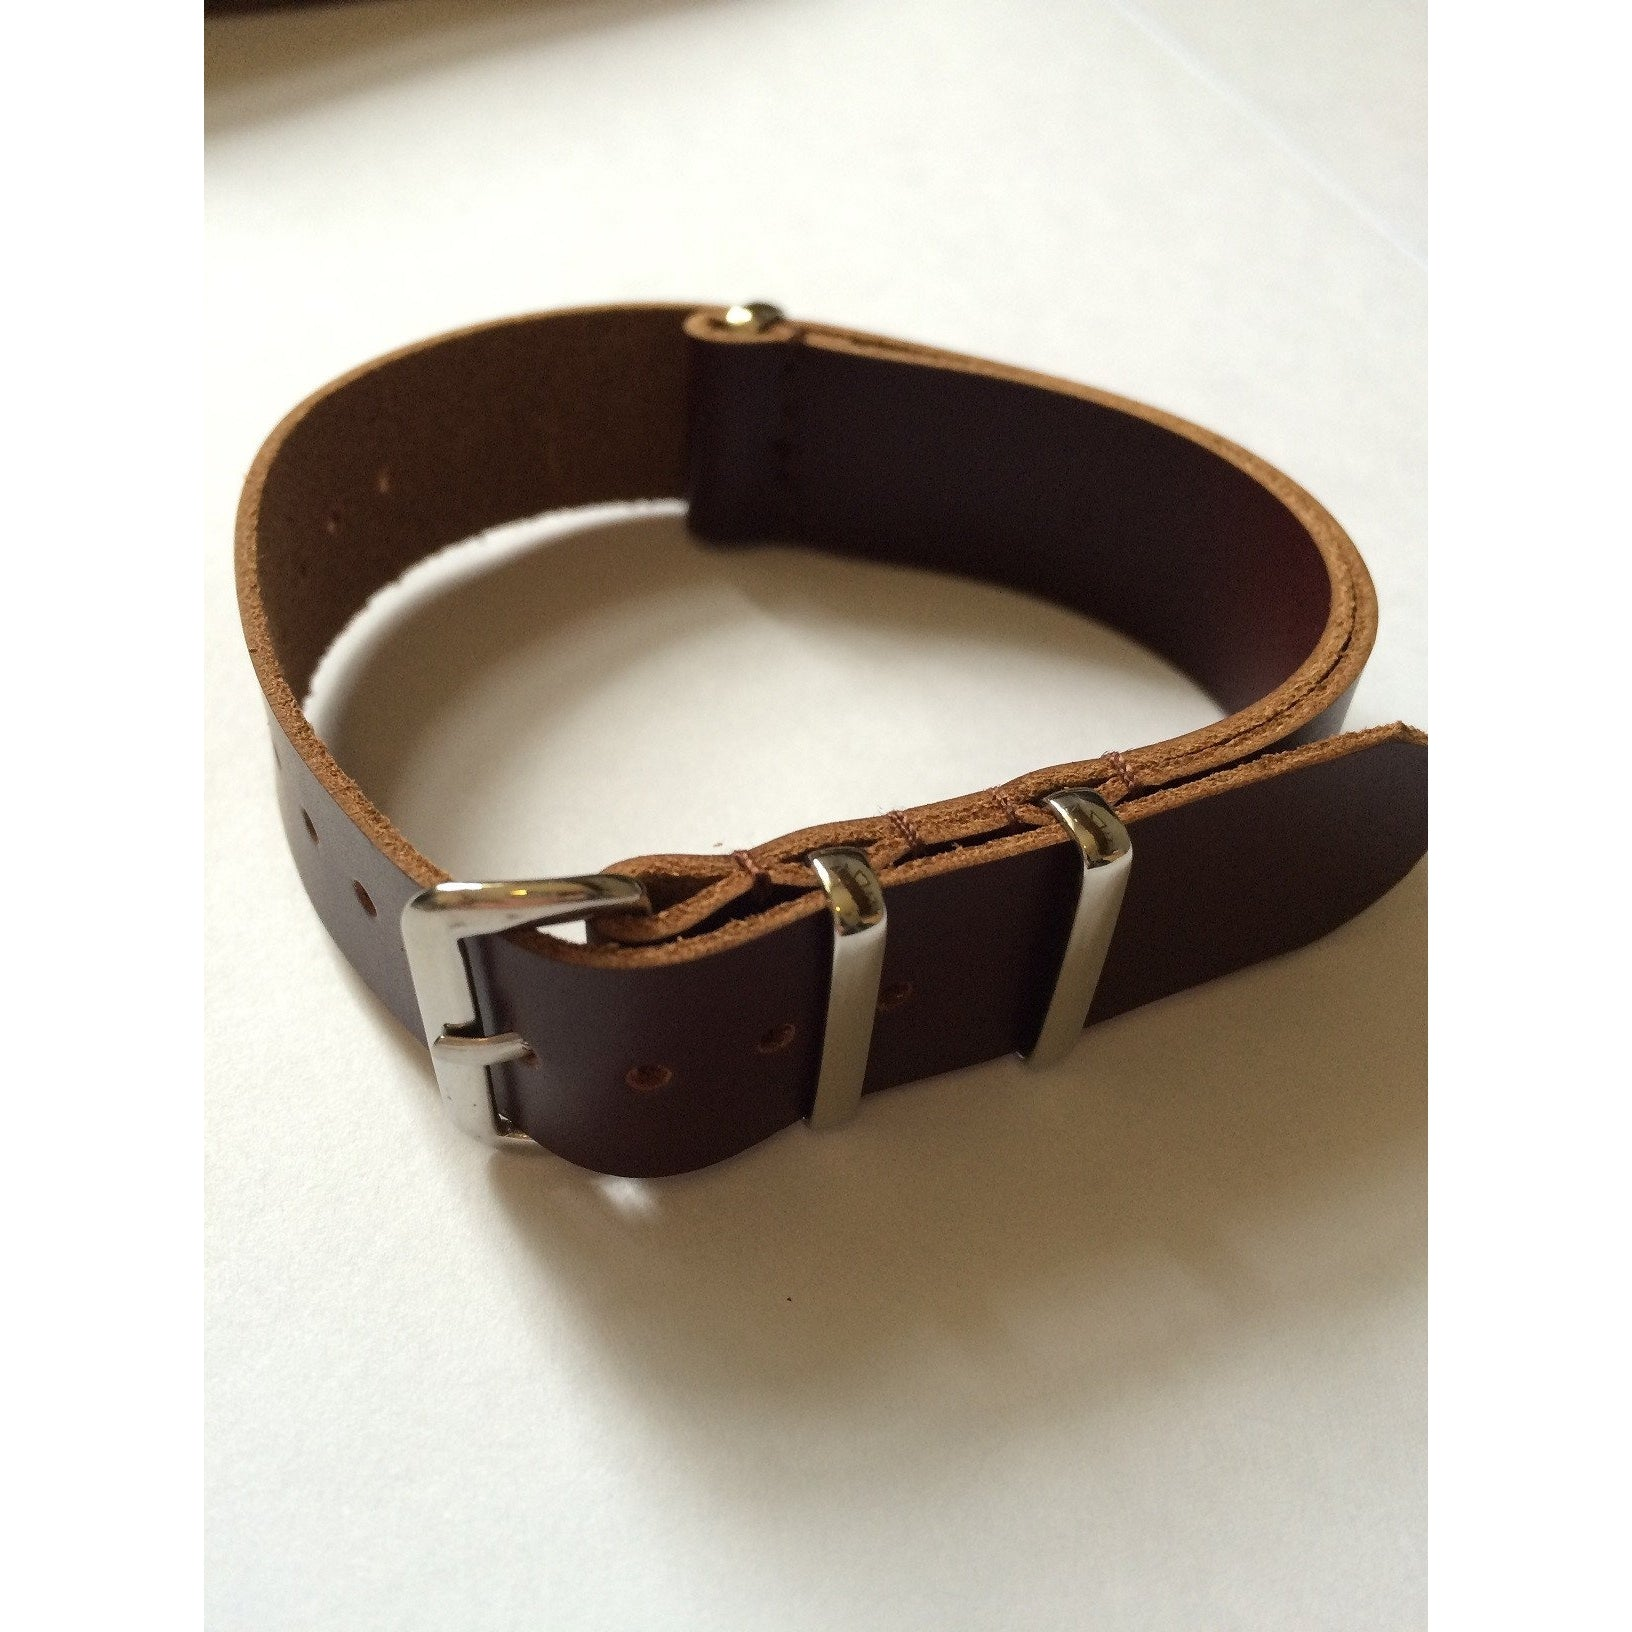 Brown Leather Nato Strap - Watchfinder General - UK suppliers of Russian Vostok Parnis Watches MWC G10  - 1